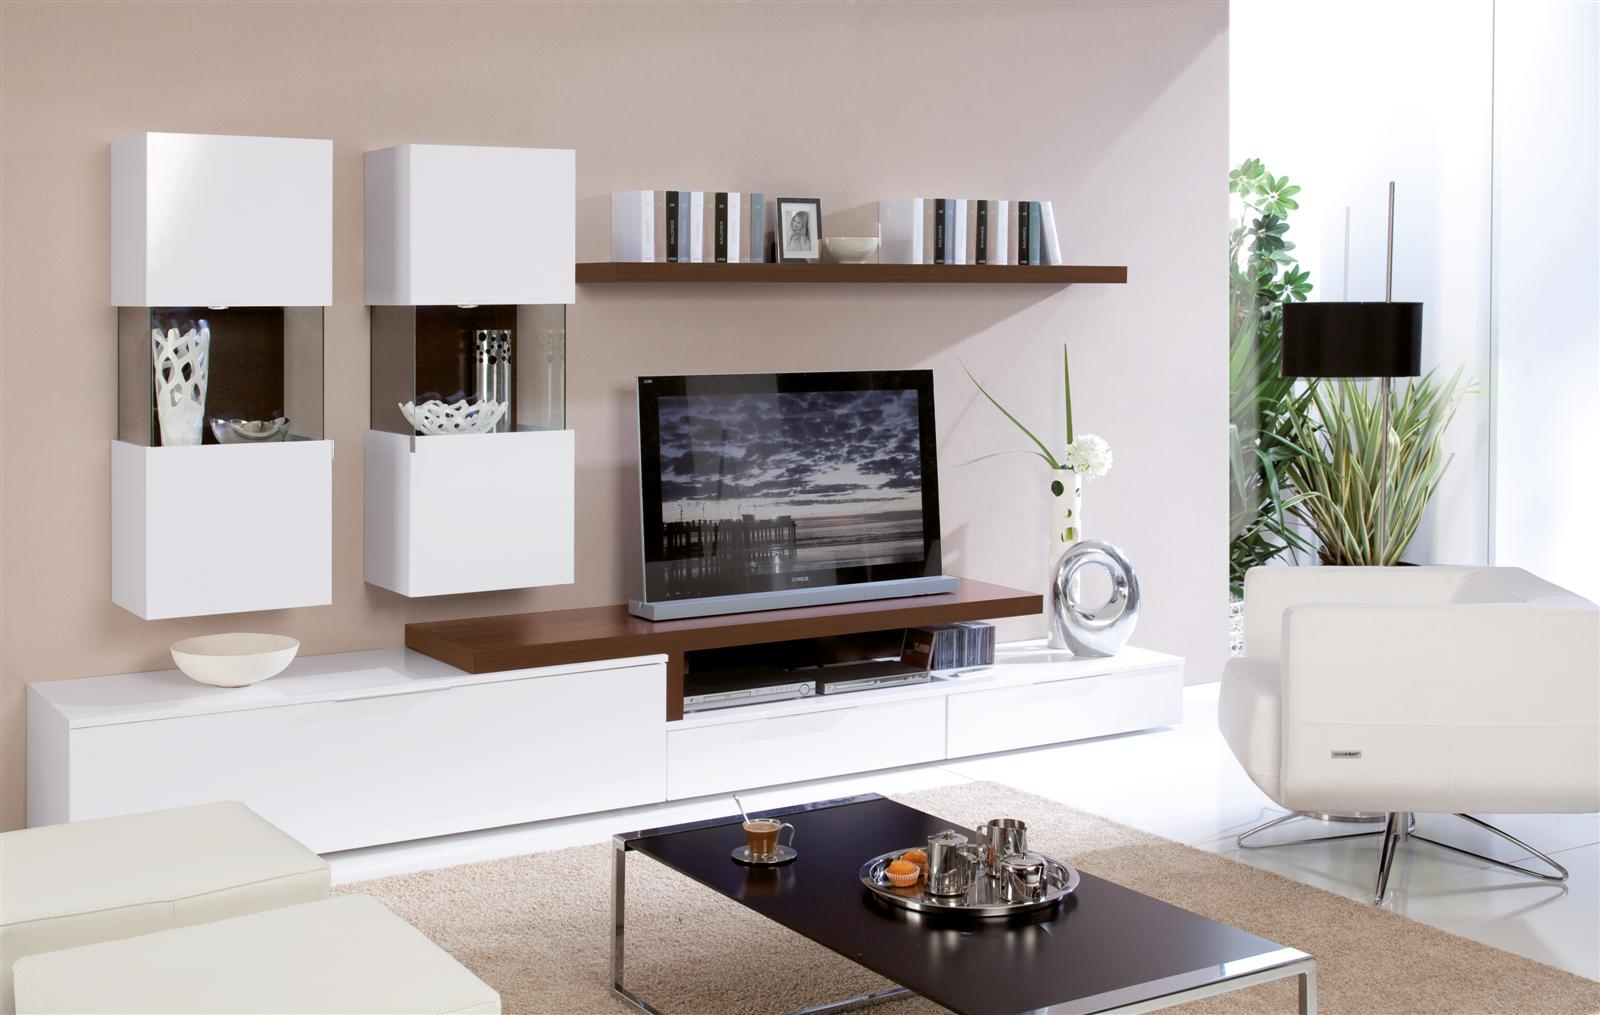 20 modern tv unit design ideas for bedroom living room with pictures - Tv wall unit designs for living room ...